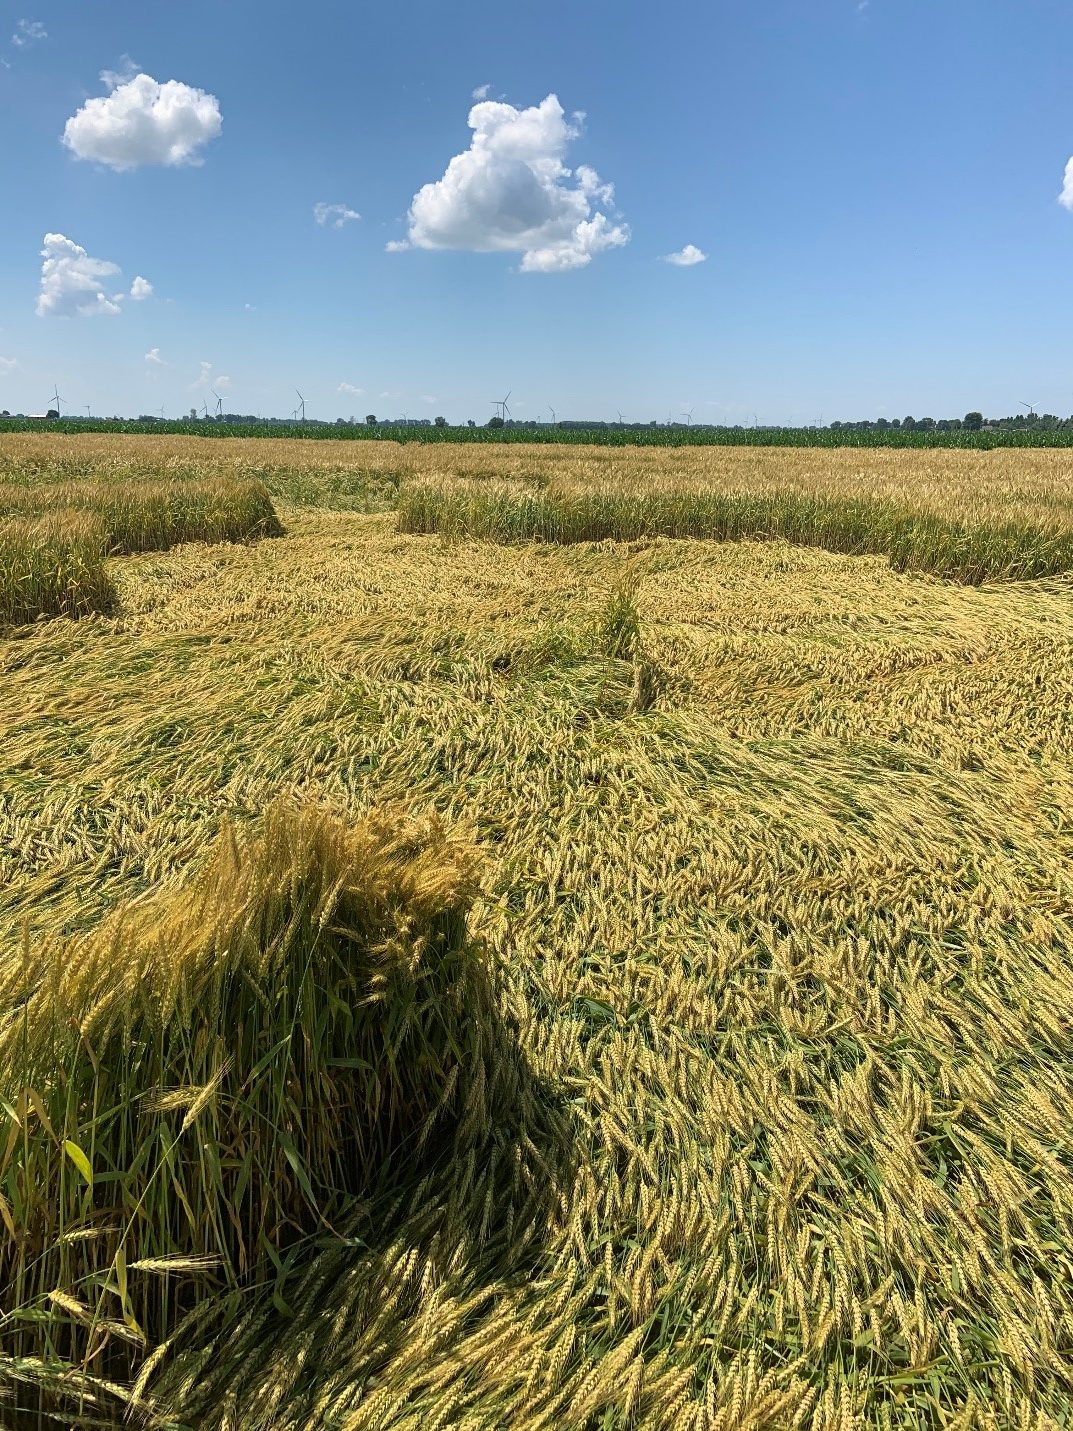 Lodged winter wheat field that will require some combine and in-field adjustments to get the crop successfully harvested.